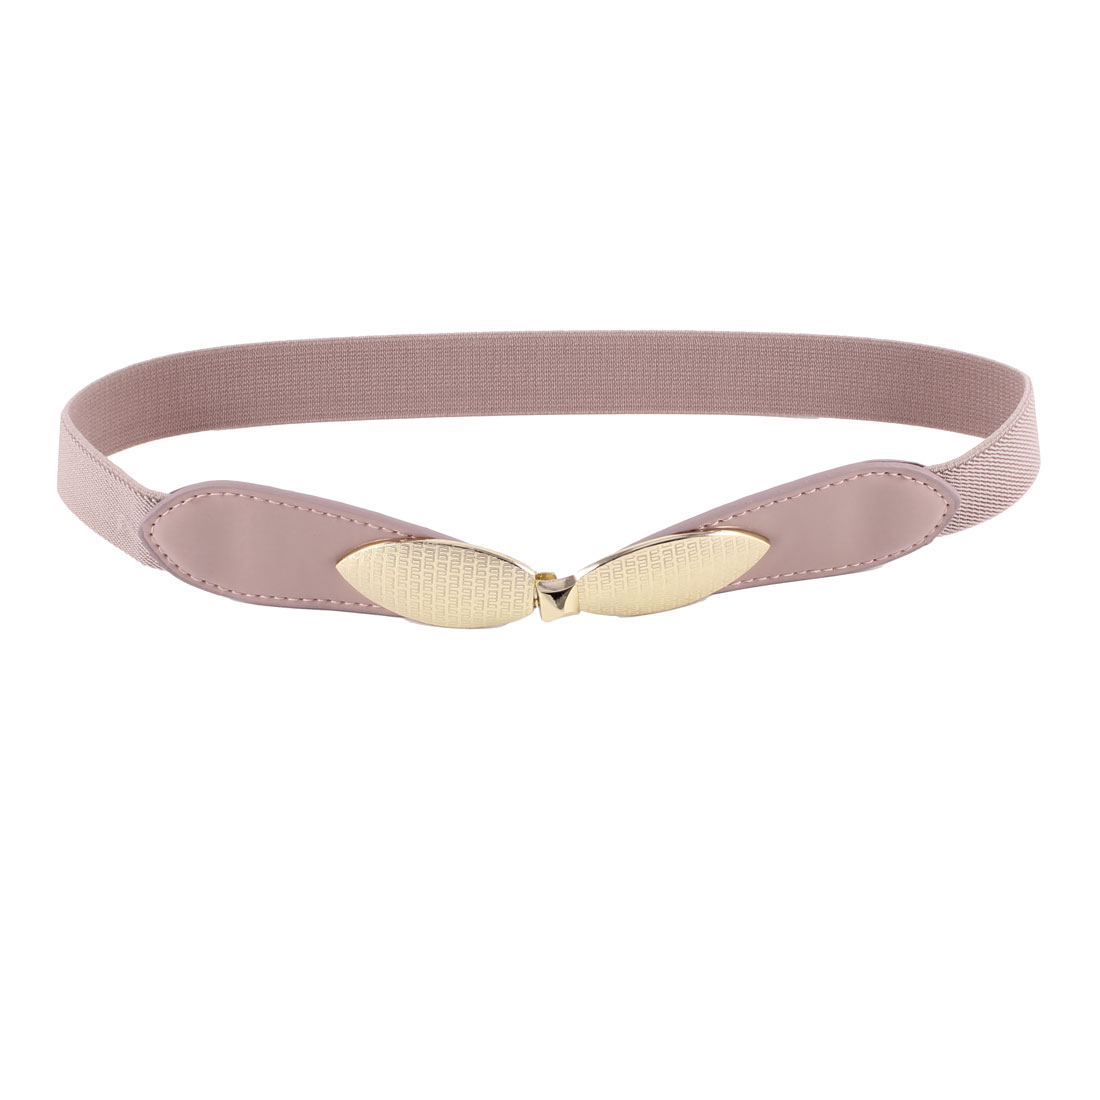 Ladies Pink Gold Tone Bowtie Interlocking Buckle Elastic Waistband Cinch Belt